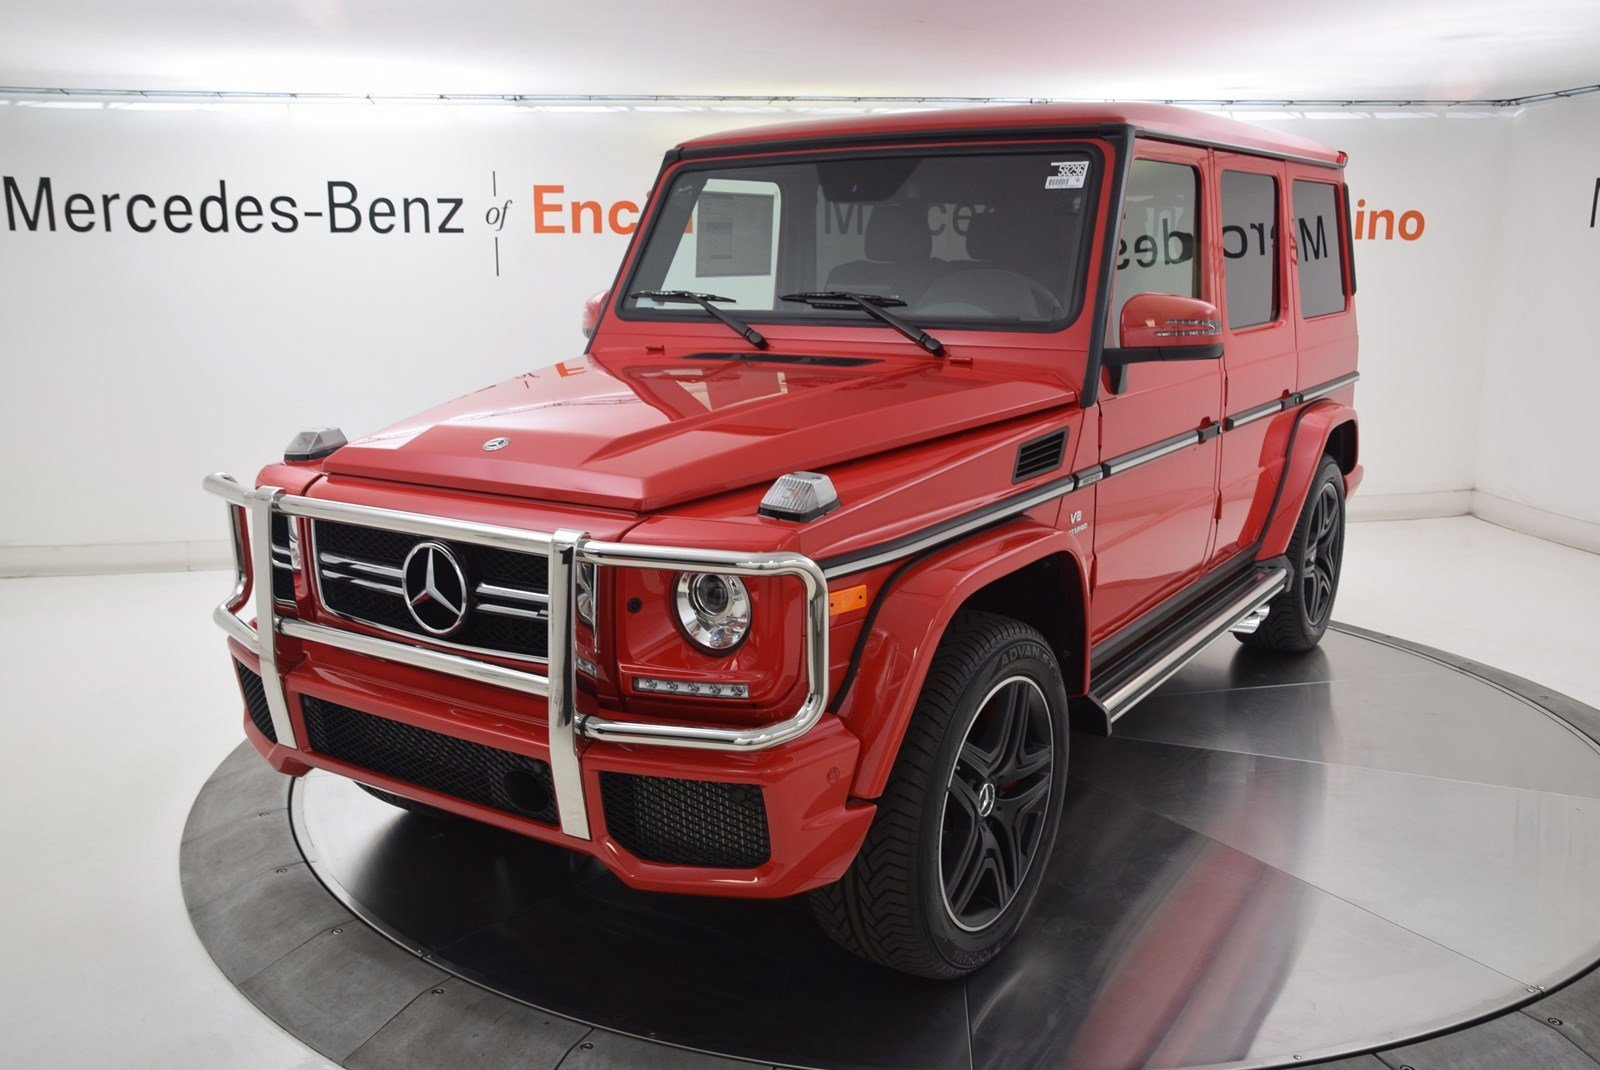 New 2018 mercedes benz g class amg g 63 suv suv in encino for Mercedes benz financial payment address